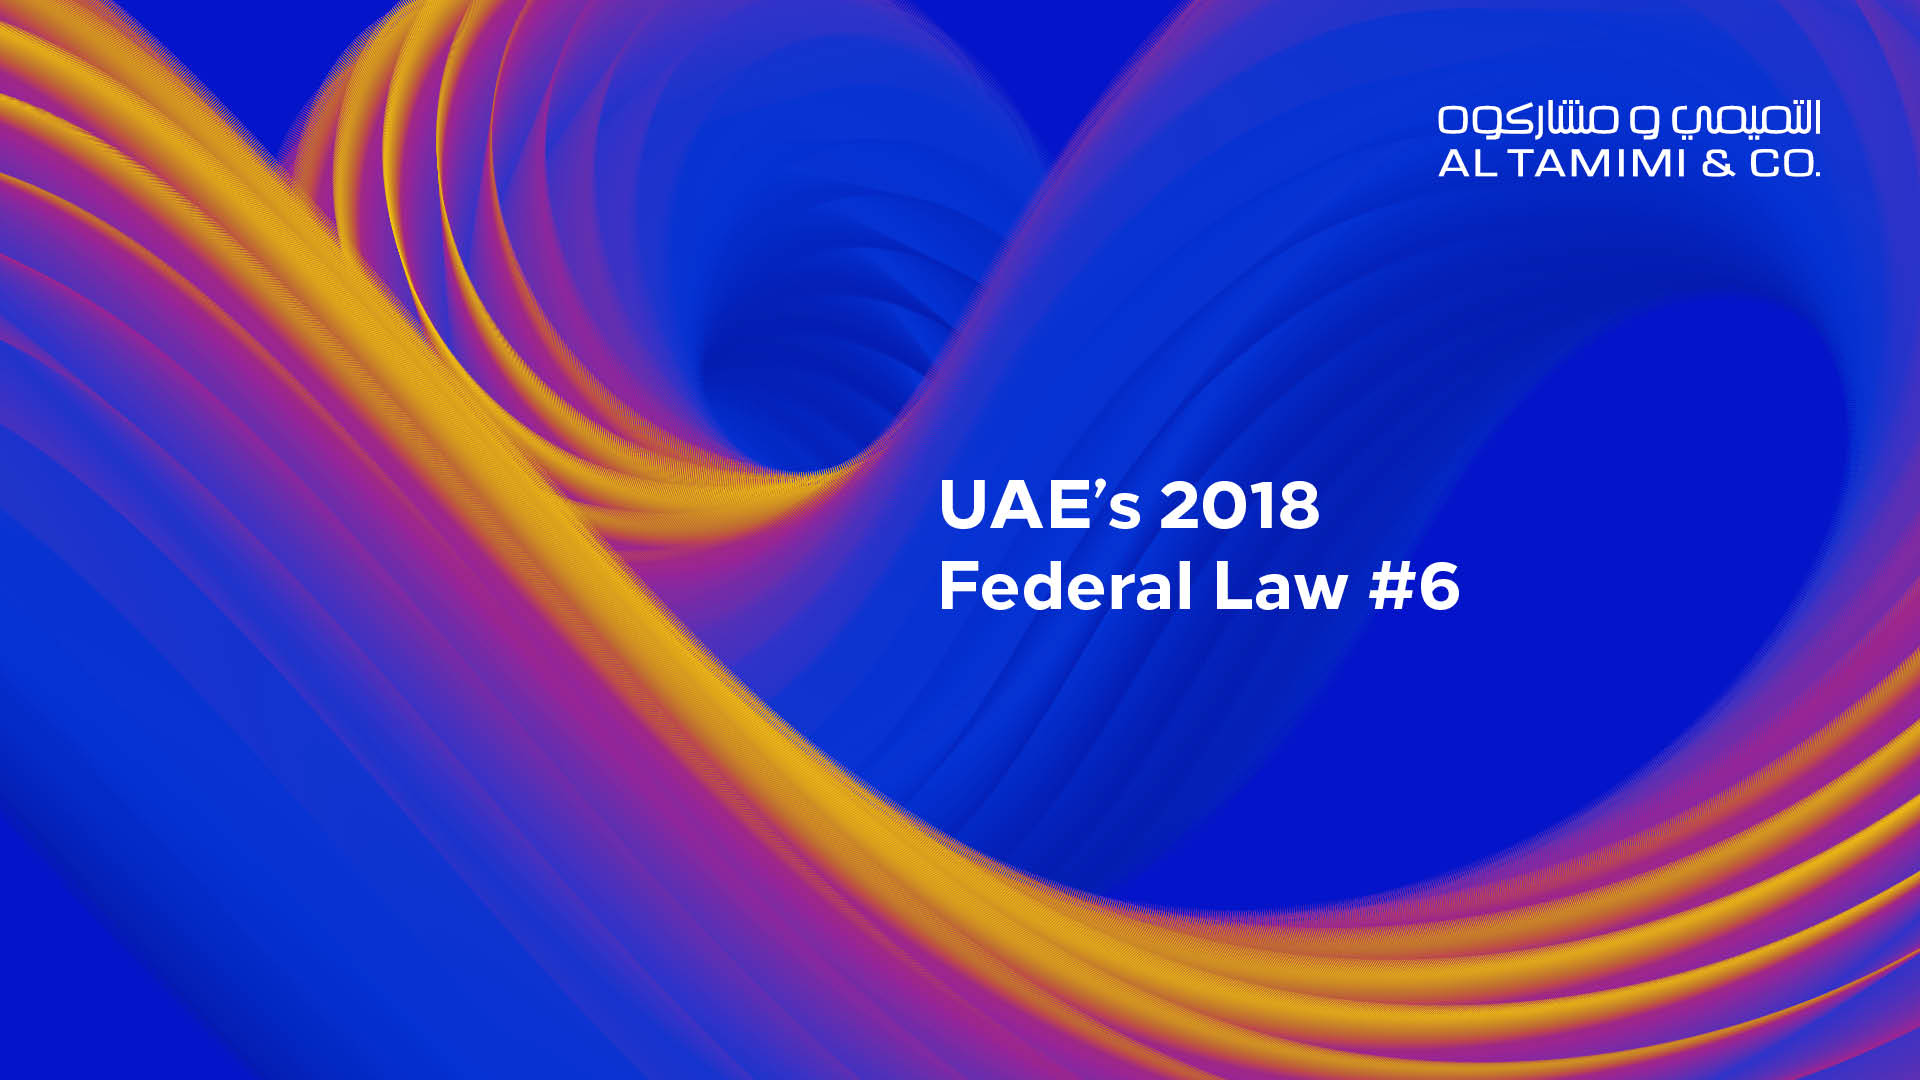 The UAE's New Arbitration Law – Federal Law #6 of 2018